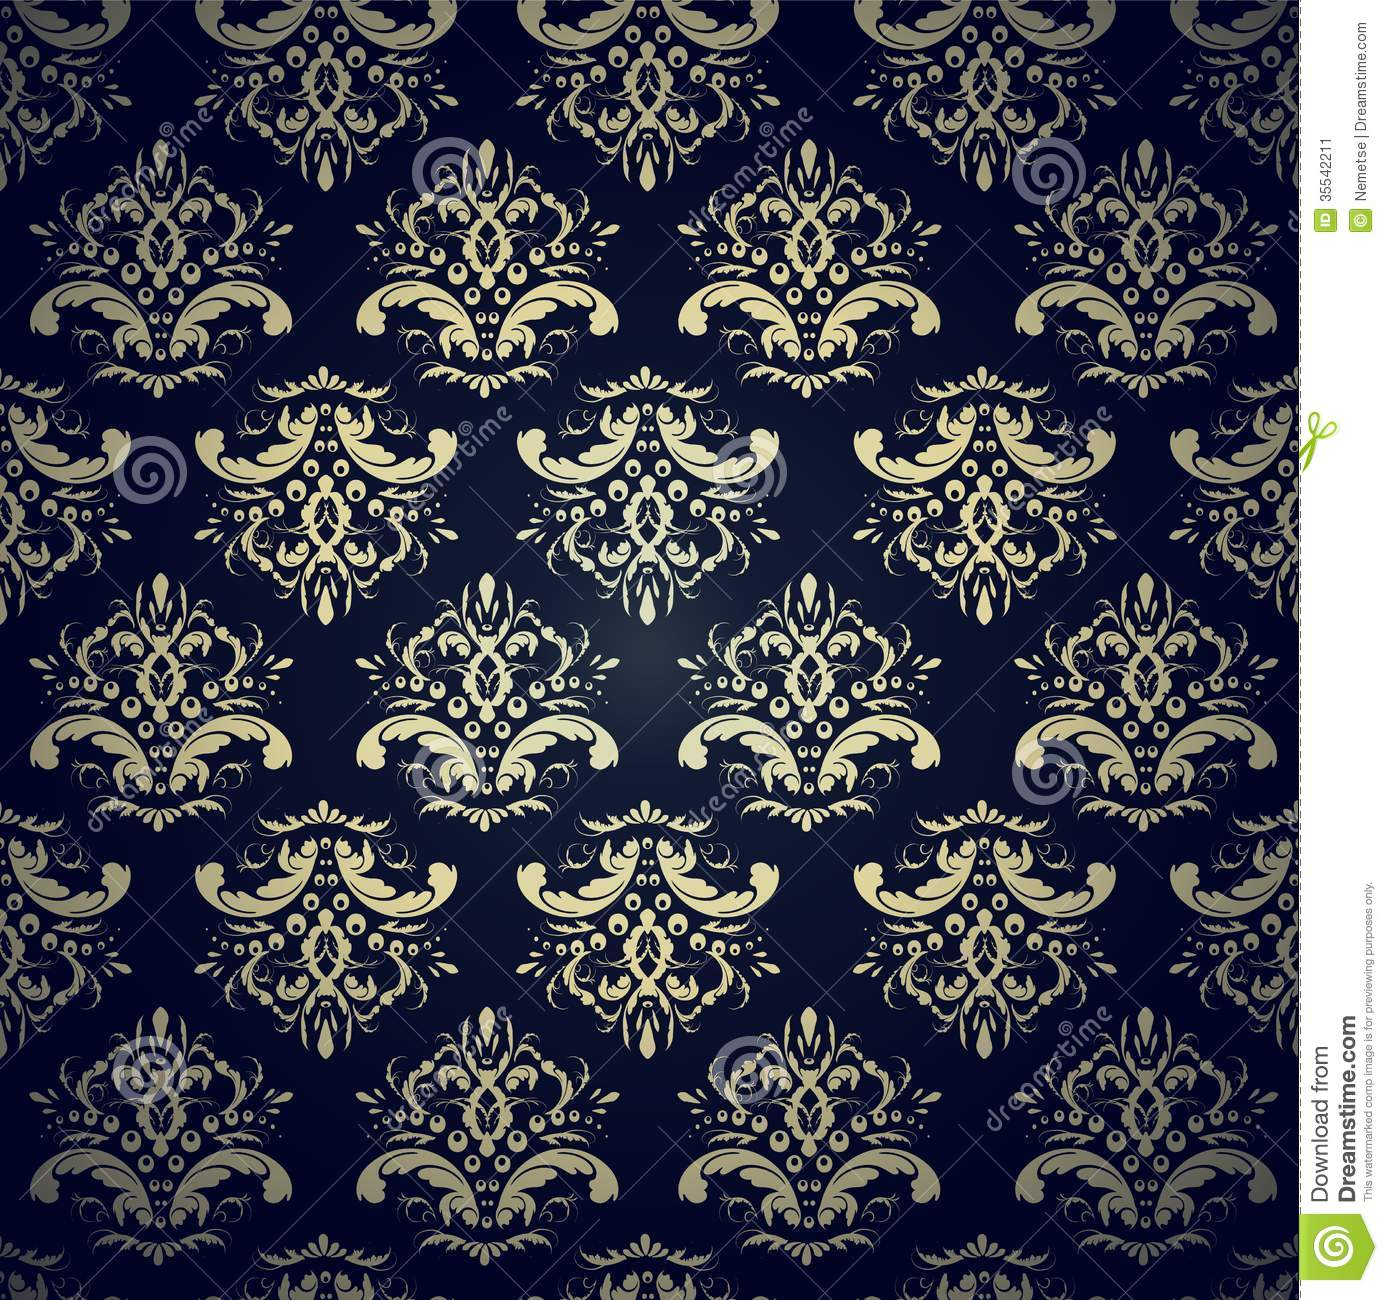 Navy Blue And Gold Wallpaper Navy blue and 1388x1300